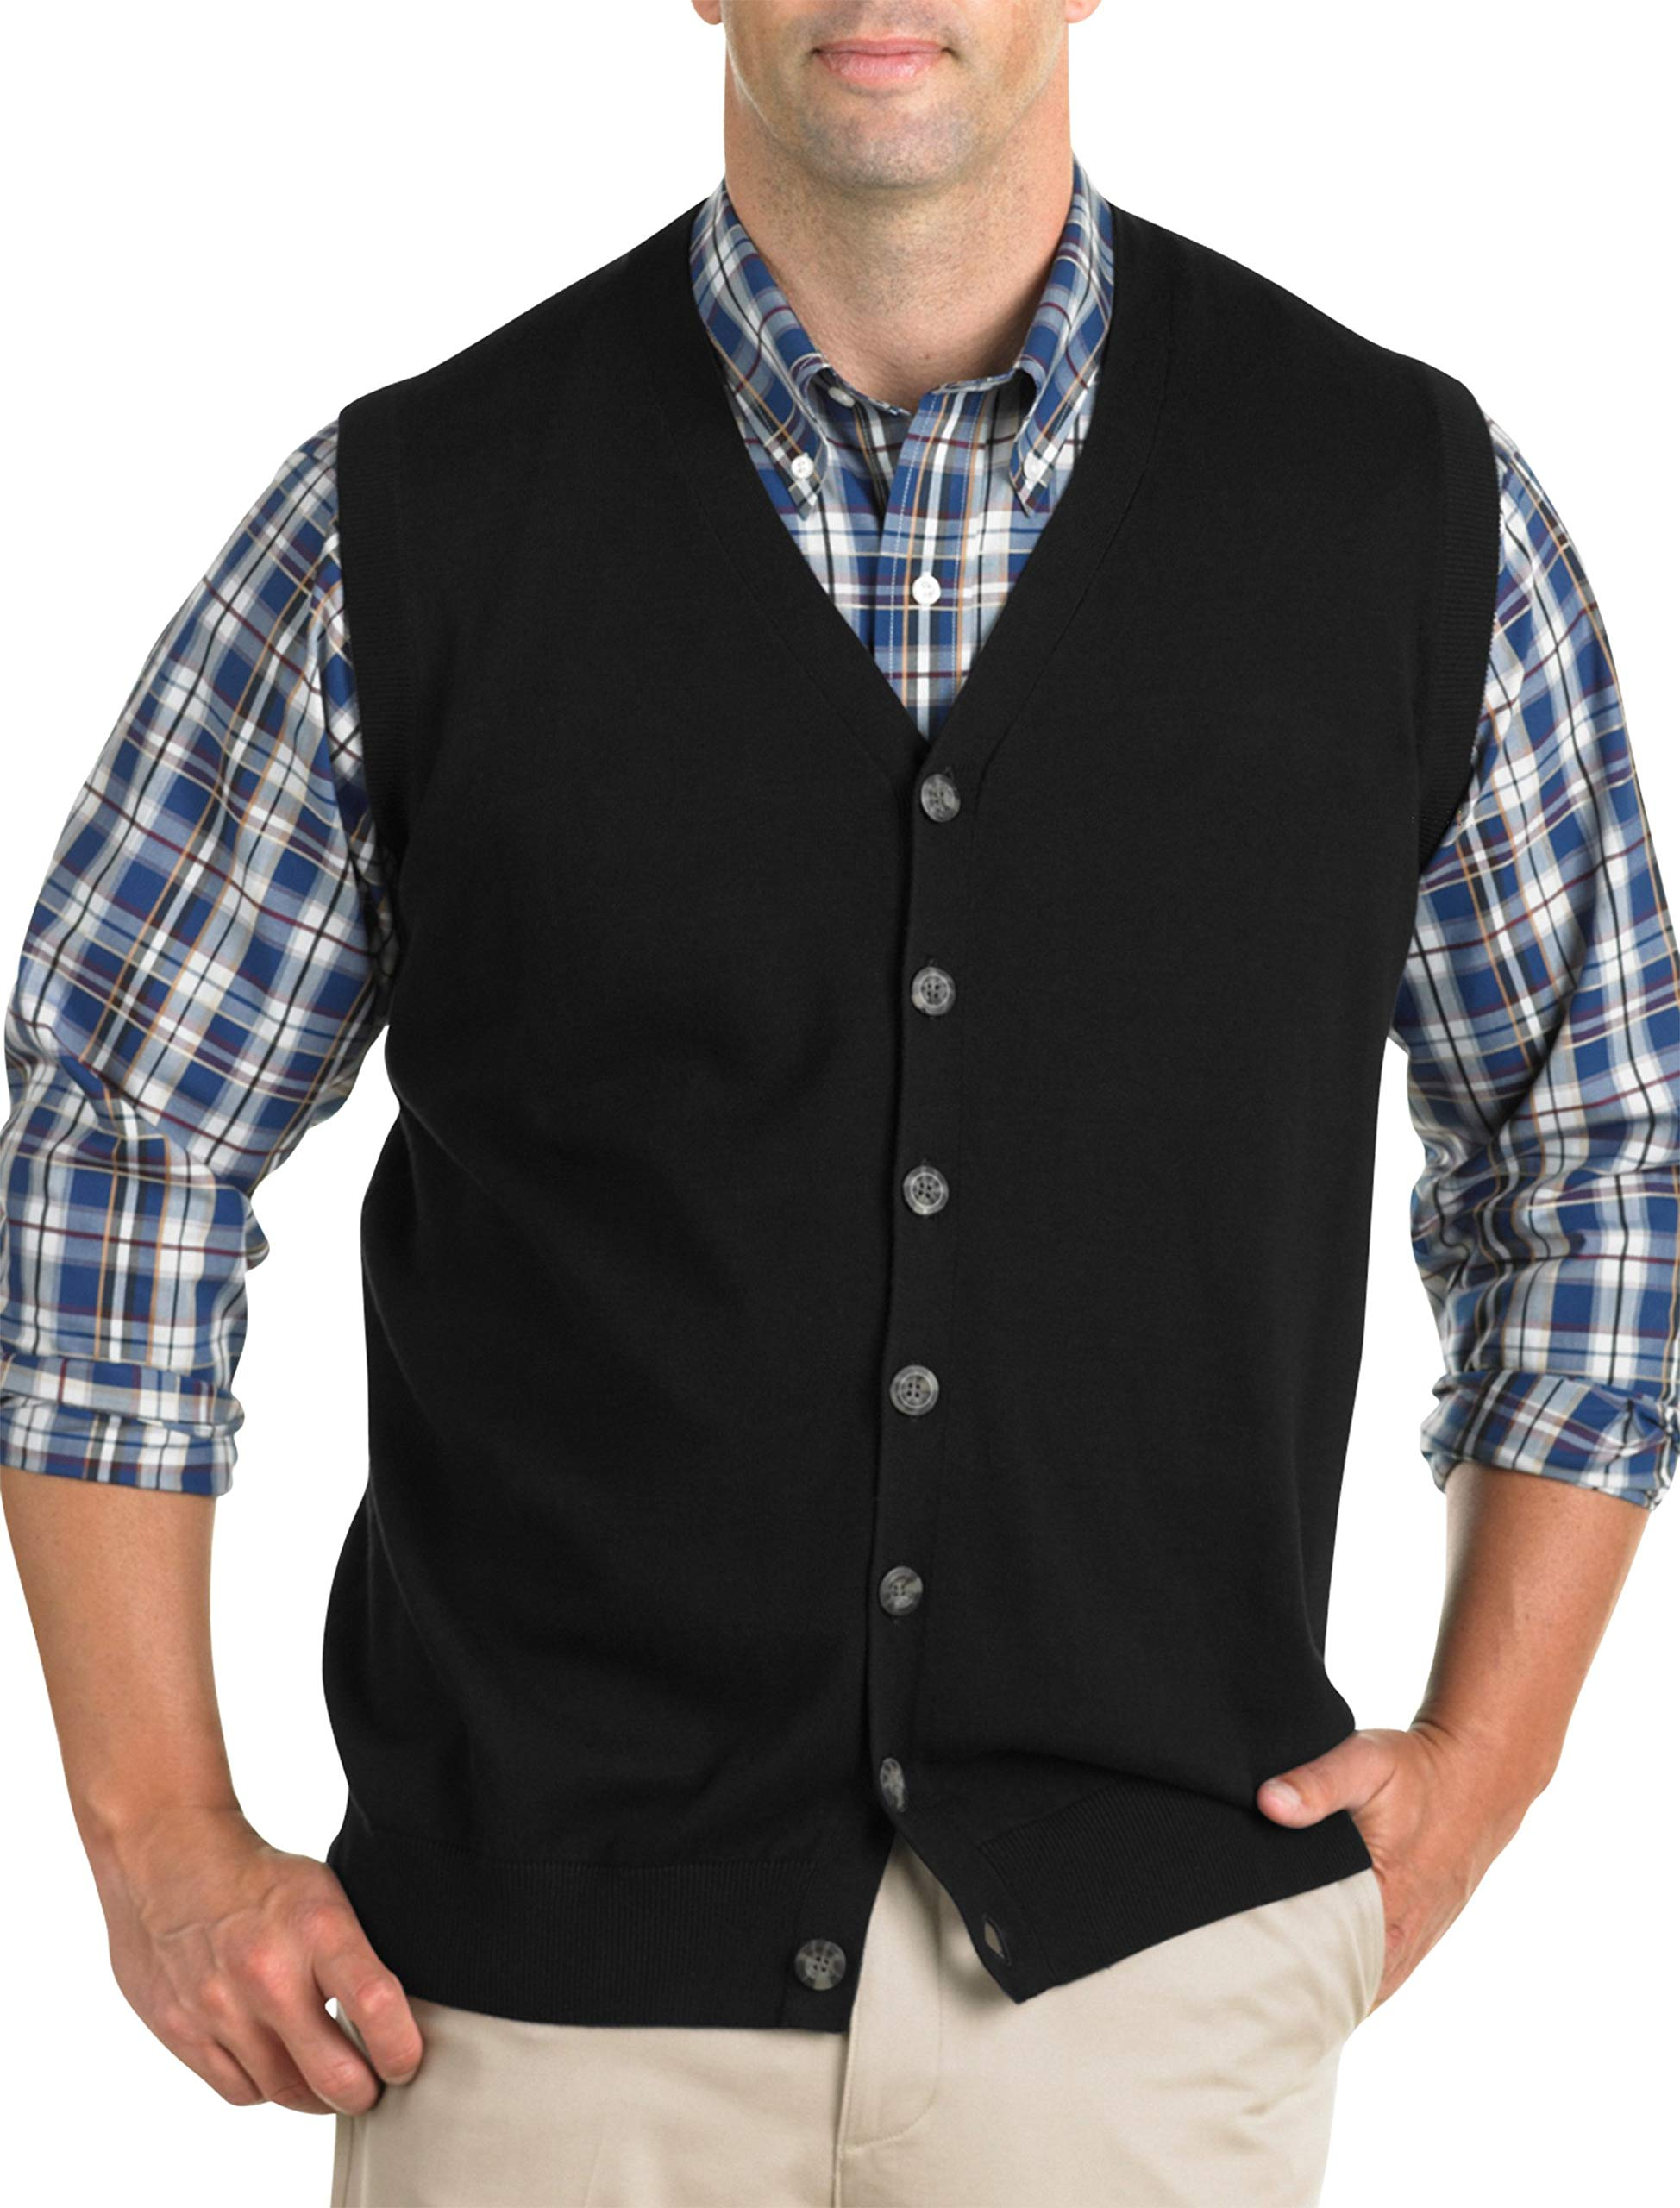 Oak Hill by DXL Big and Tall Button-Front Sweater Vest, Black 3XL